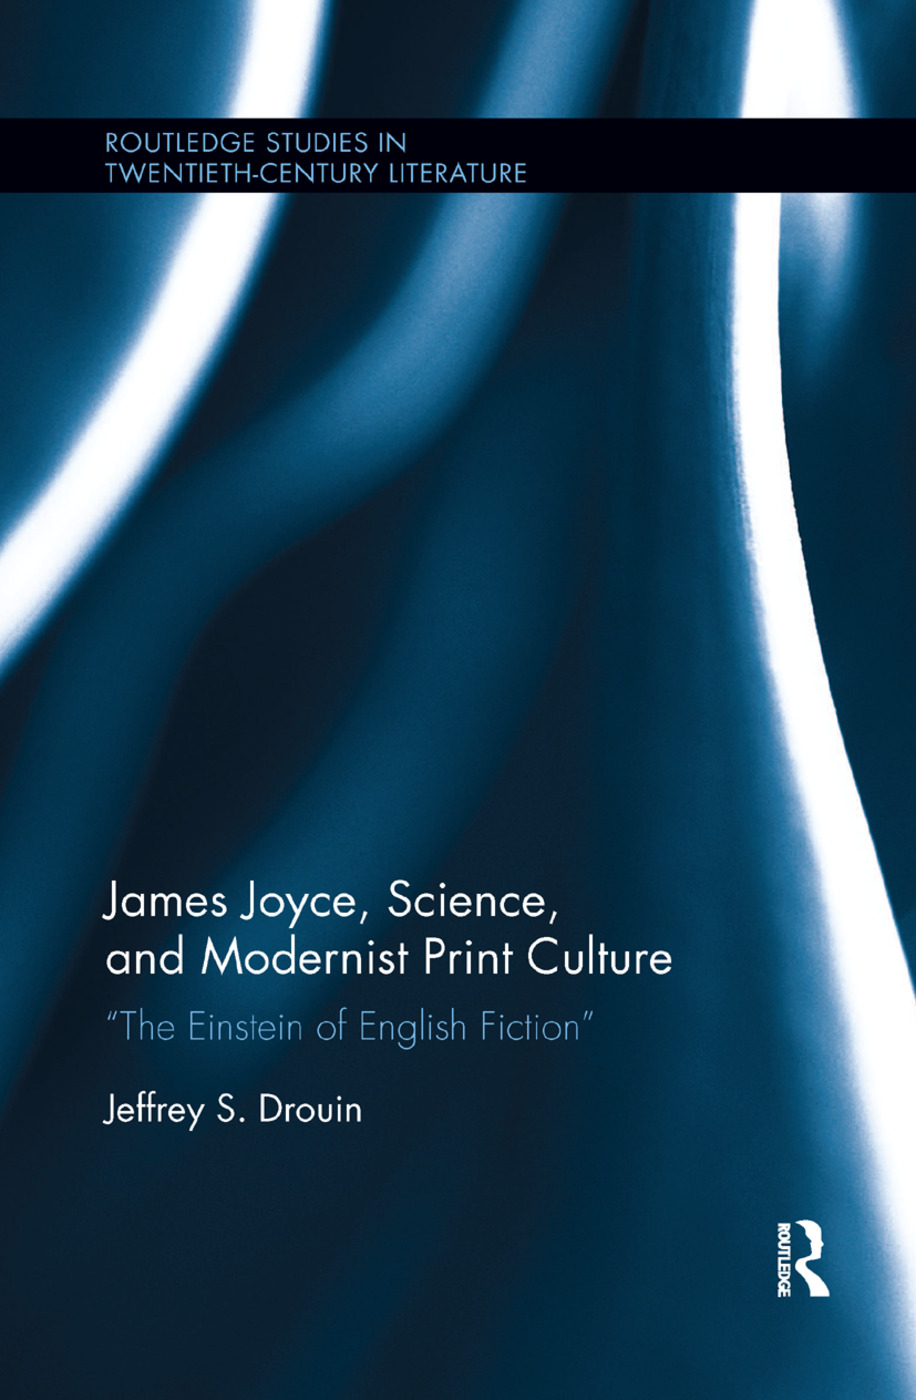 James Joyce, Science, and Modernist Print Culture